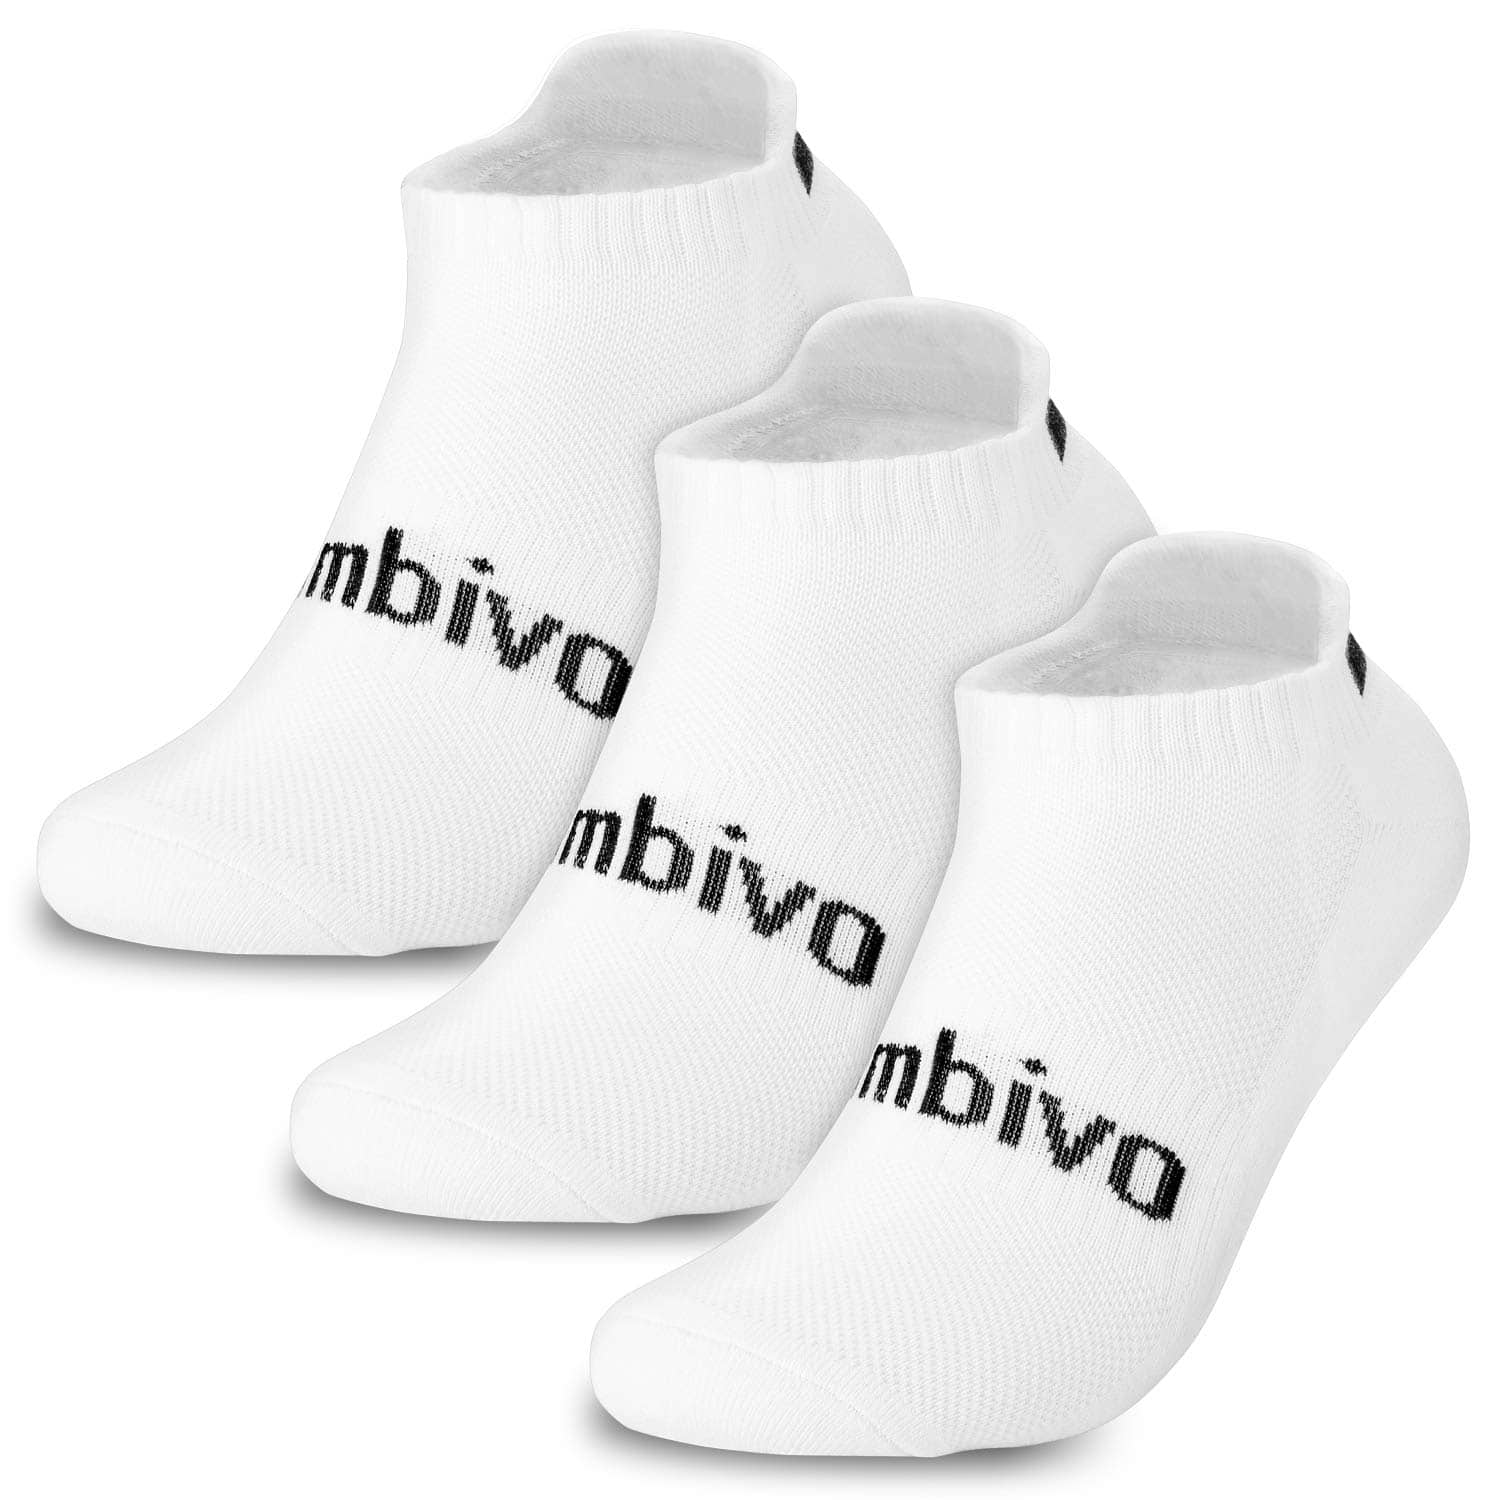 4561fbd16 3 Pairs CAMBIVO Womens Athletic Running Socks (Various) for  5.99 ...